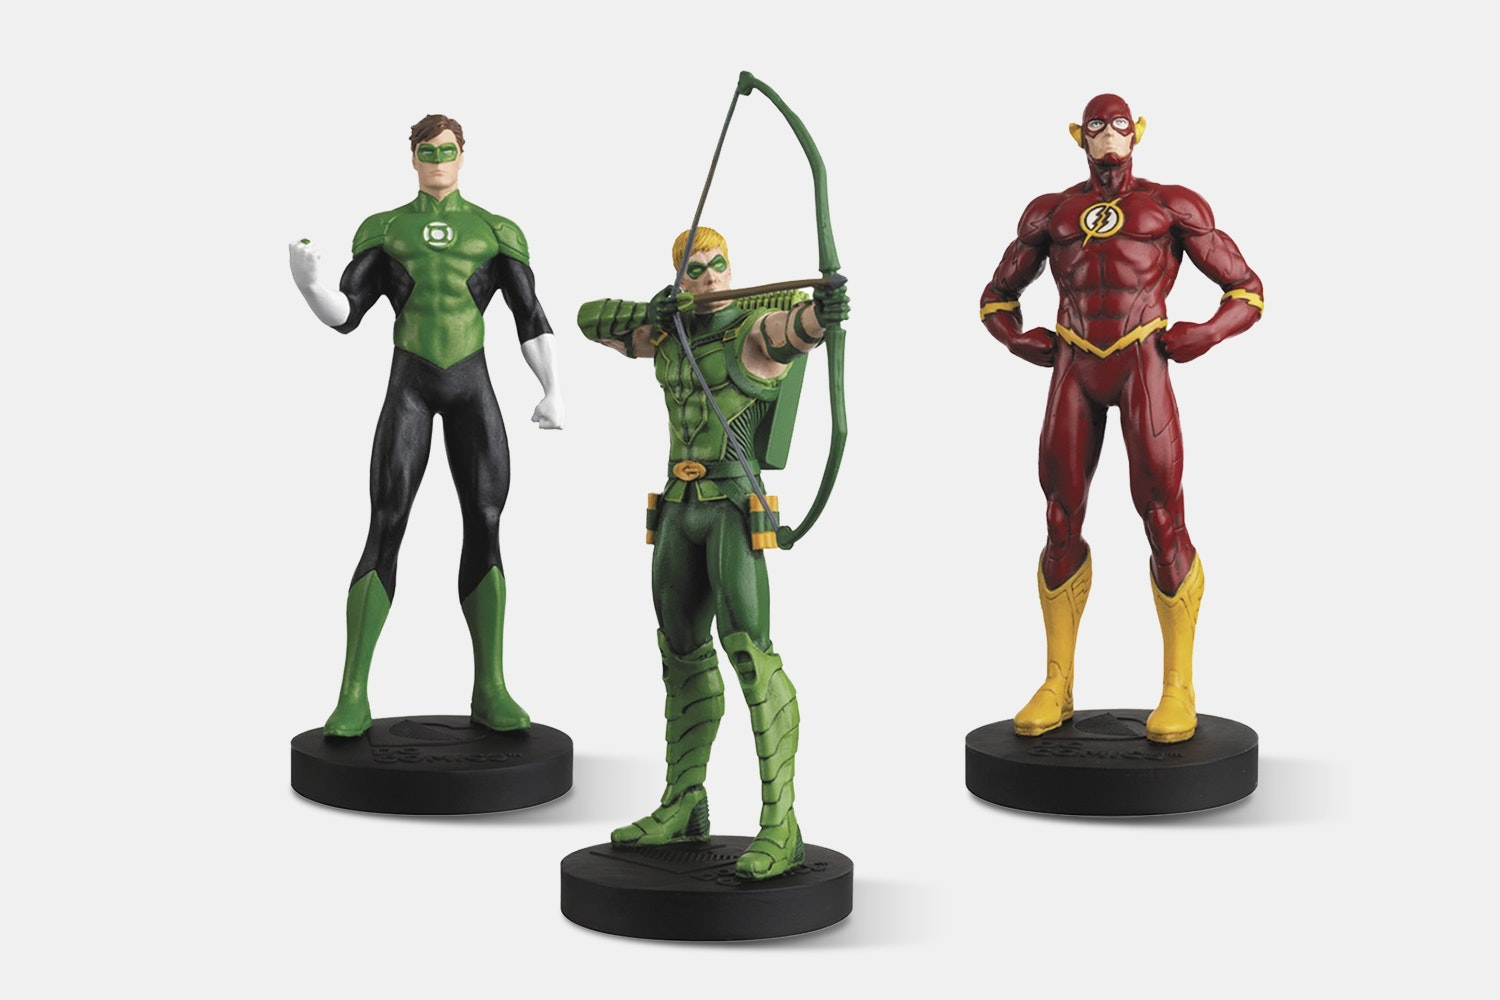 Box Set 2 (The Flash, Green Lantern, and Green Arrow)